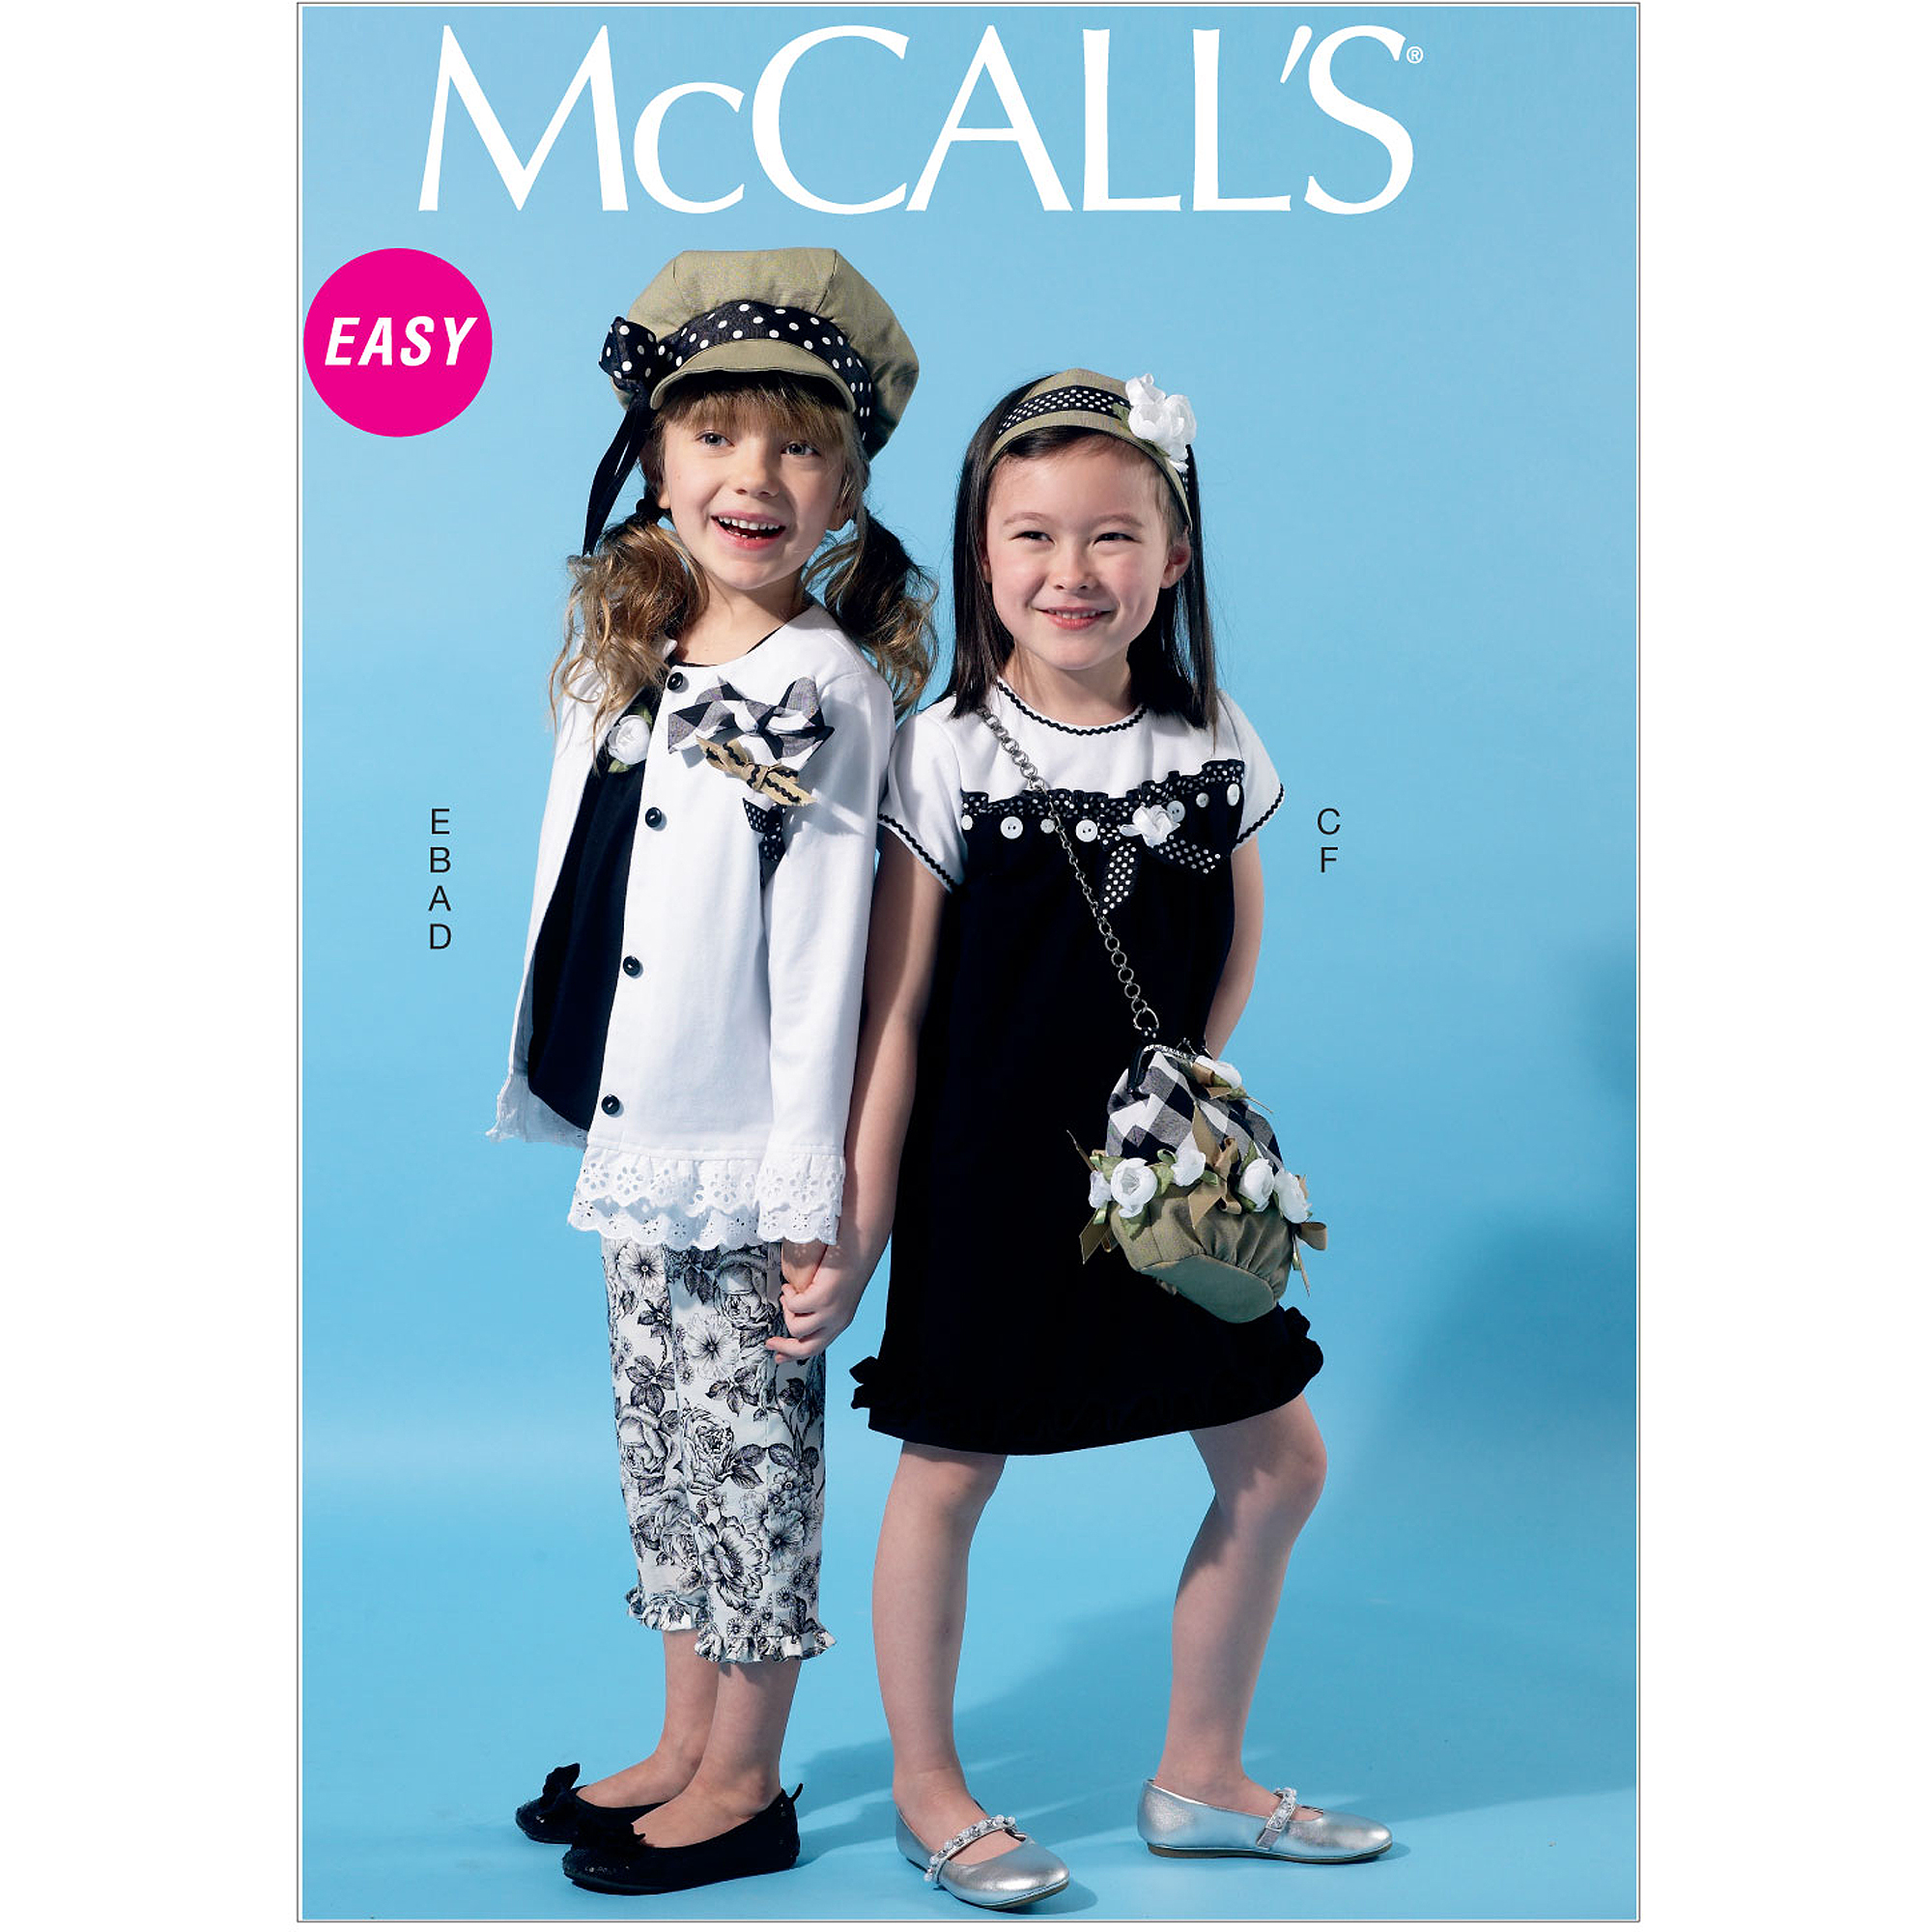 McCall's Pattern Children's and Girls' Cardigan, Top, Dress, Pants, Hat and Purse, CDD (2, 3, 4, 5)